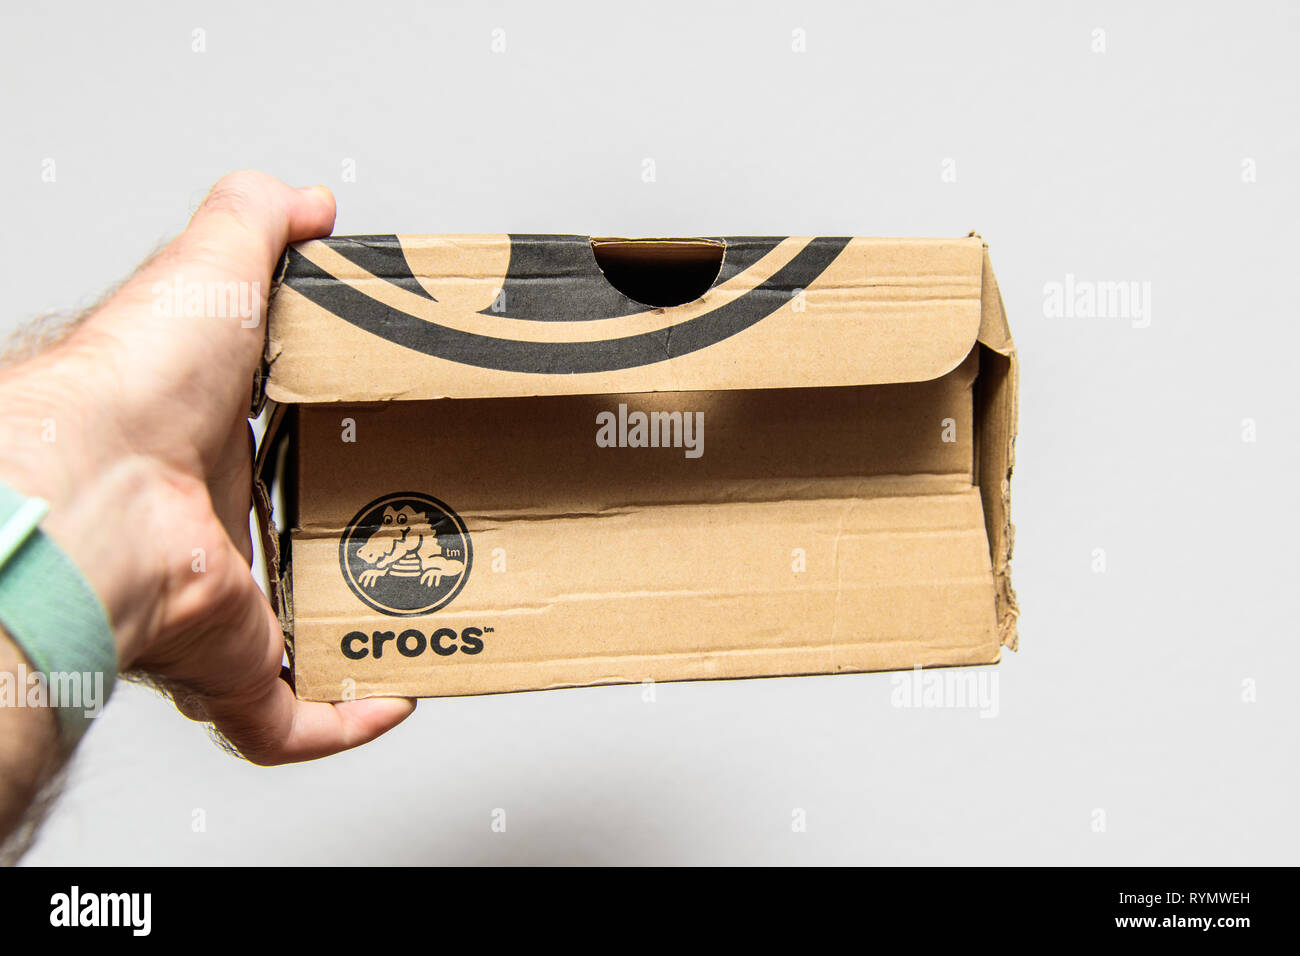 Paris, France - Jun 12, 2018: Freshly delivered Crocs shoes cardboard box featuring big crocodile logotype - side view of the box in man's hands  - Stock Image